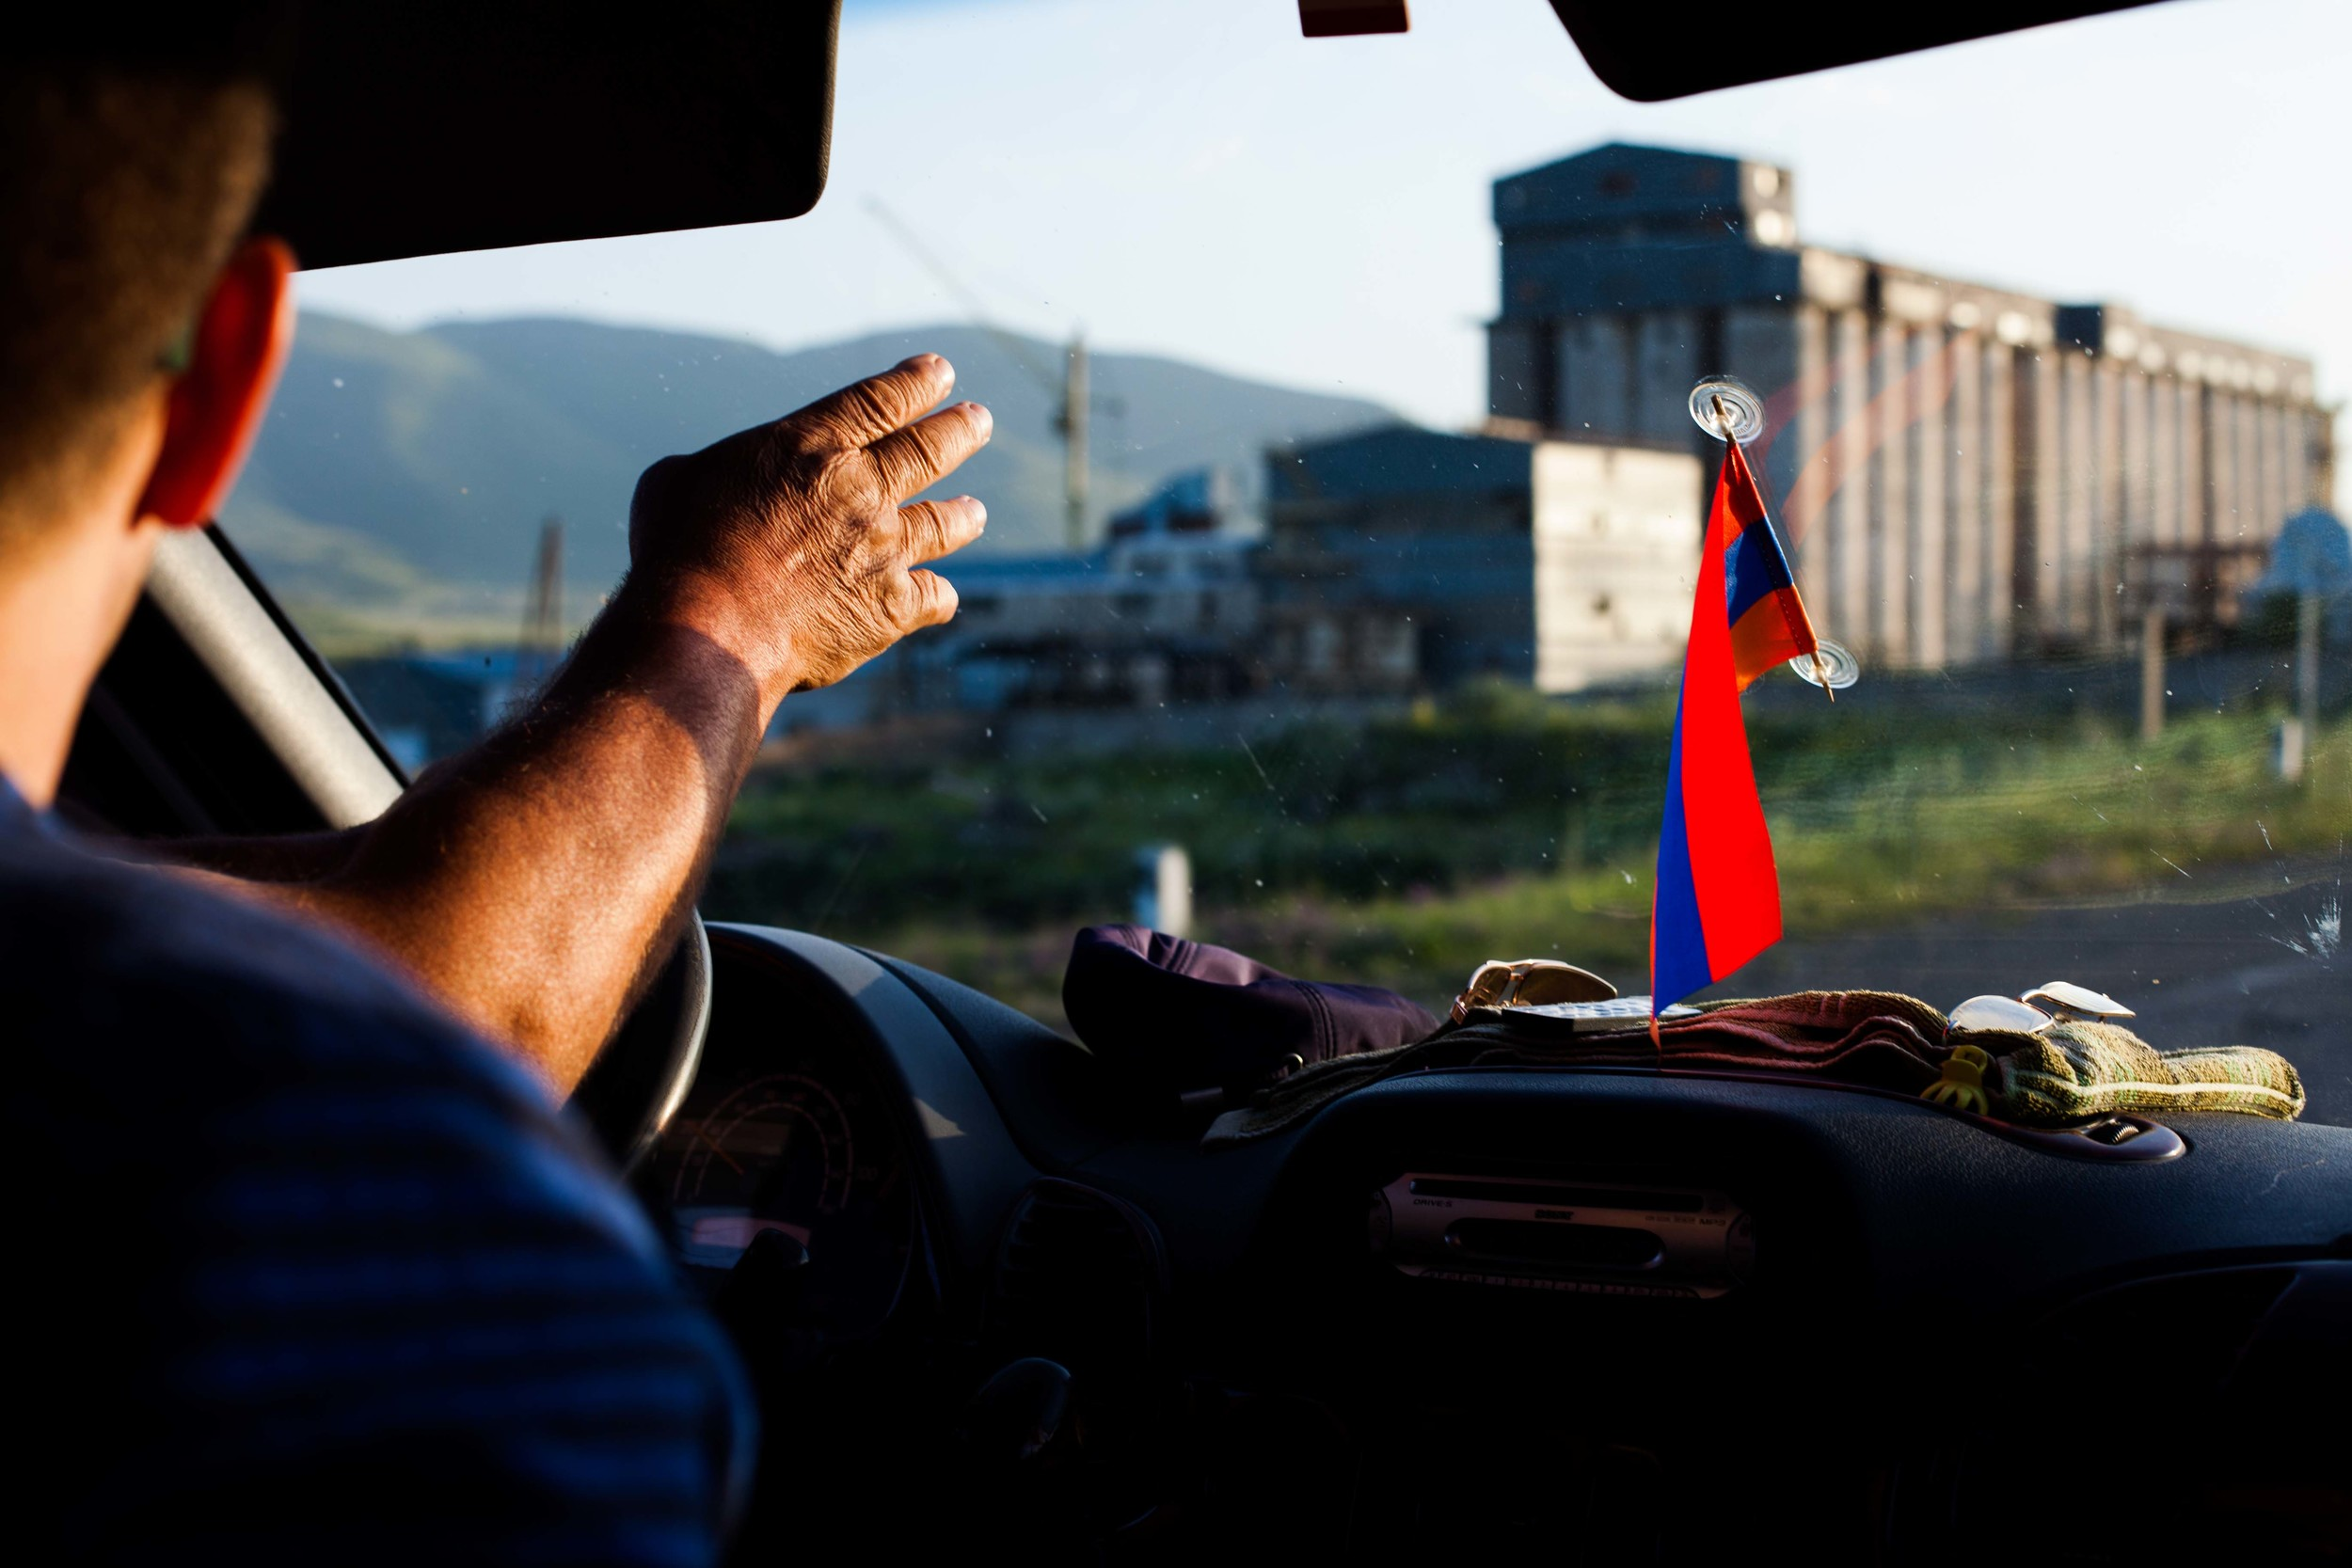 Armenia is a landlocked country bordered by Turkey to the west, Georgia to the north, Iran to the south, and Azerbaijan to the east. However, due to political issues, only the borders with Georgia and Iran are open.